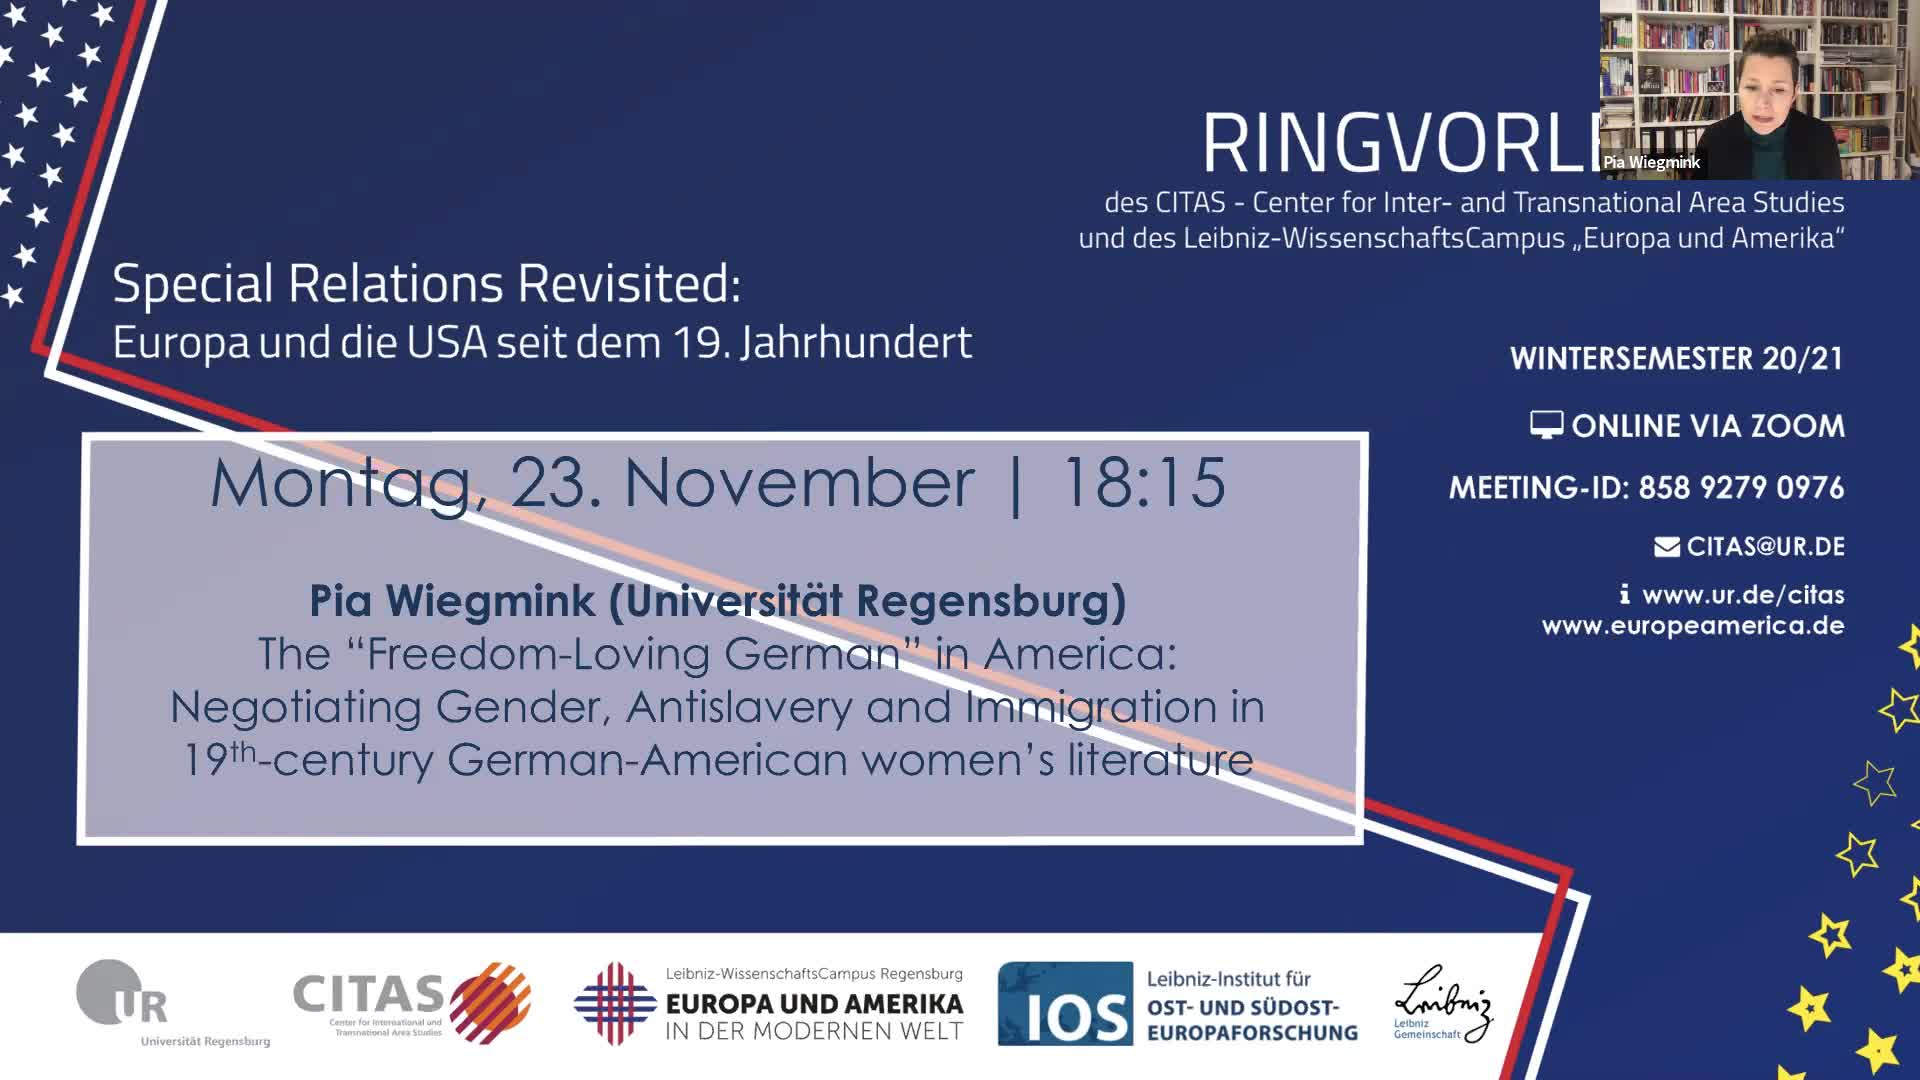 2020_11_23 Pia Wiegmink Ringvorlesung Special Relations - The Freedom-Loving German in America